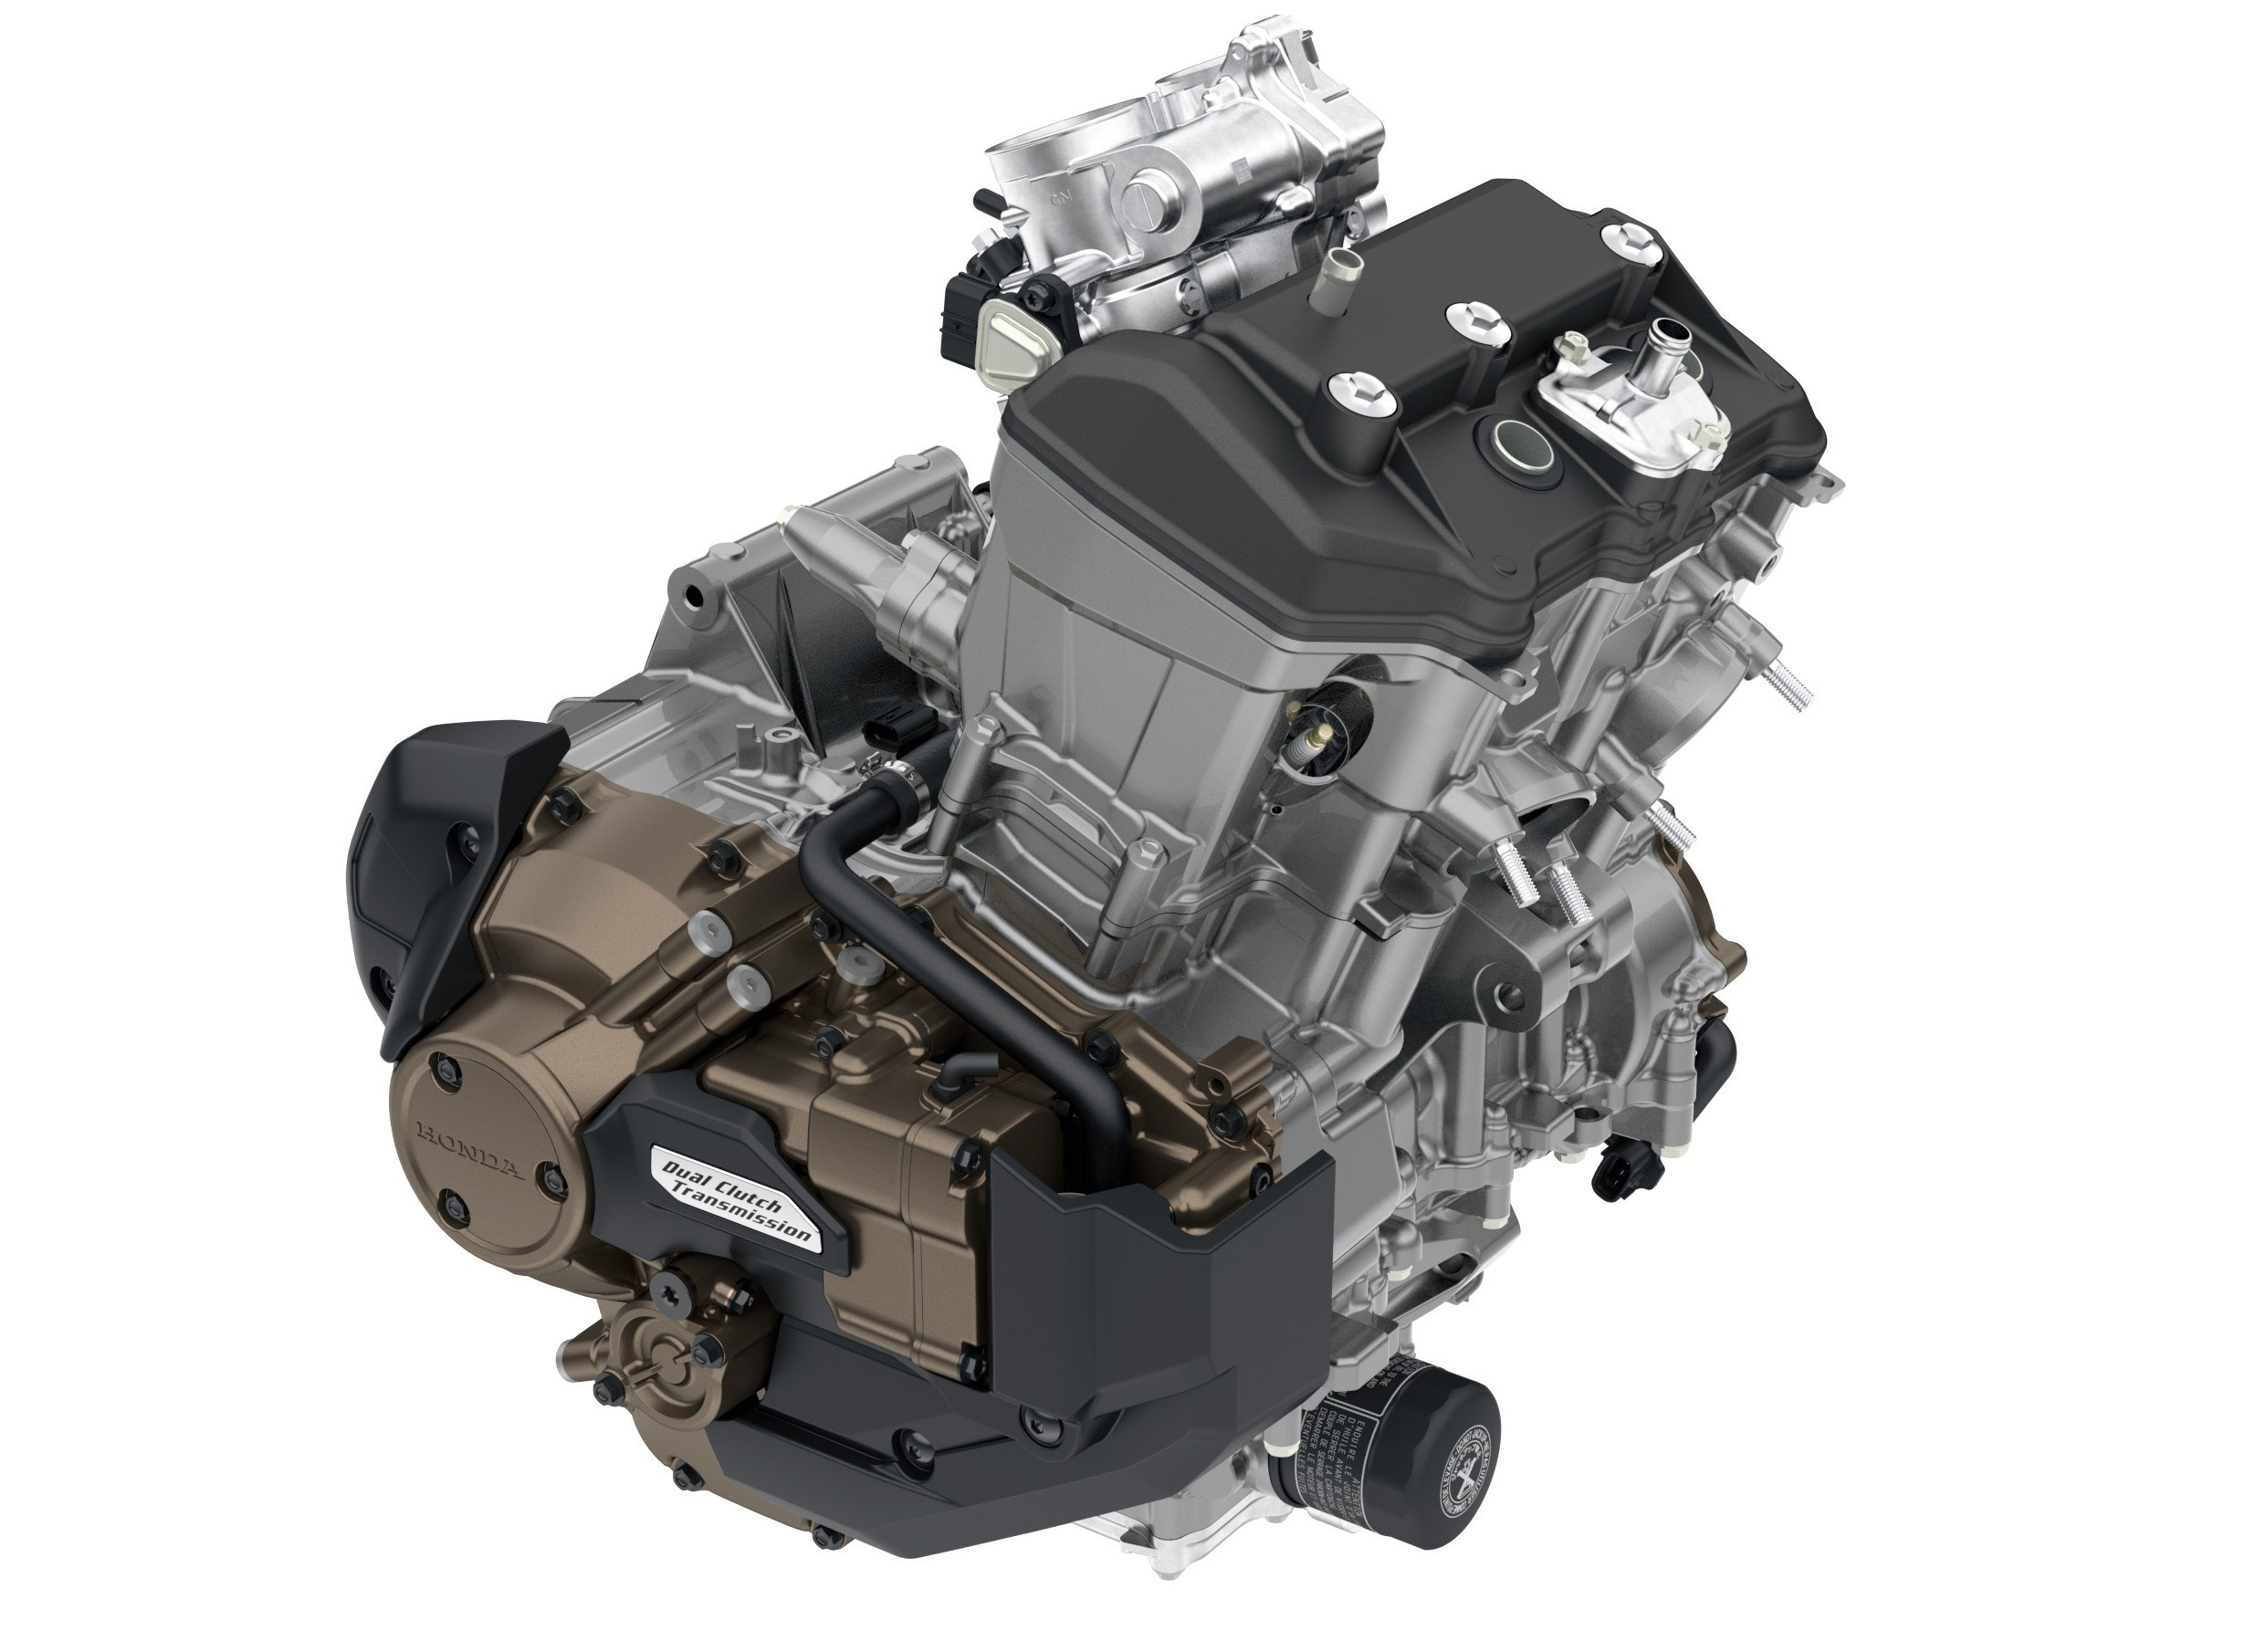 305924 Honda Reaches Ten Years Of Production Of Dual Clutch Transmission